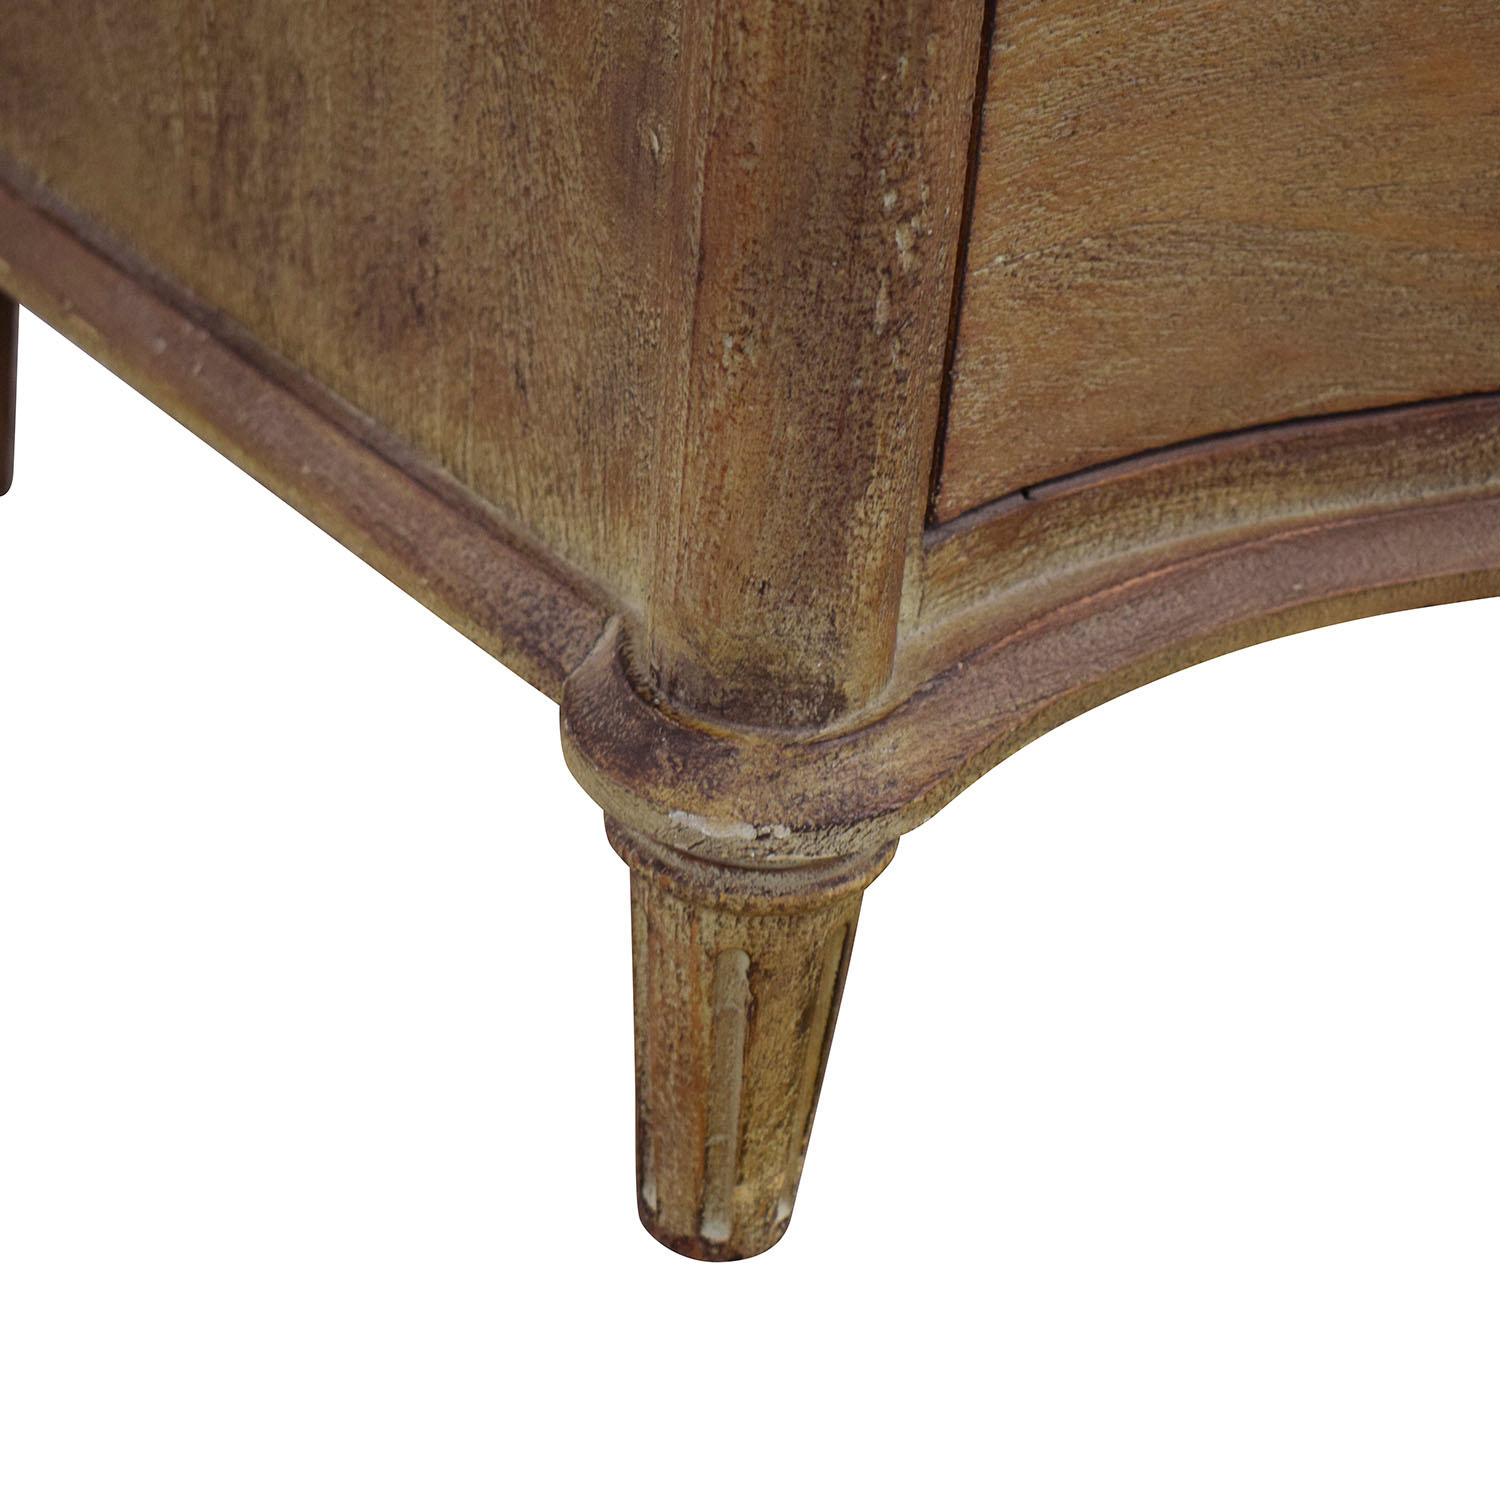 Restoration Hardware Restoration Hardware Empire Rosette Closed Nightstand dimensions